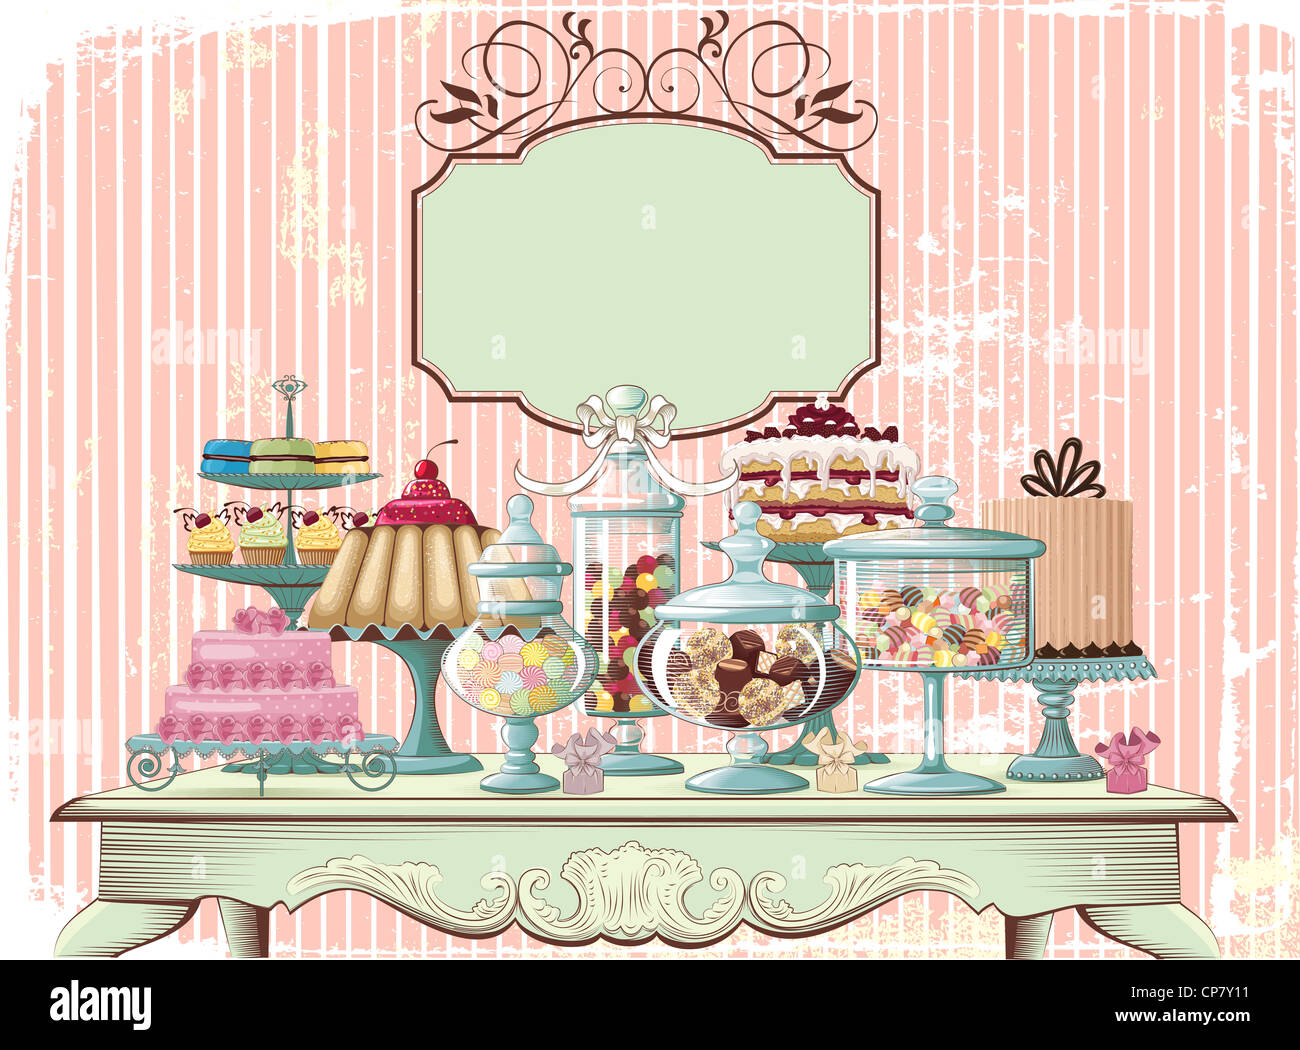 Old-fashioned table setting with different cakes and glass jars with variety candies  sc 1 st  Alamy & Old-fashioned table setting with different cakes and glass jars with ...